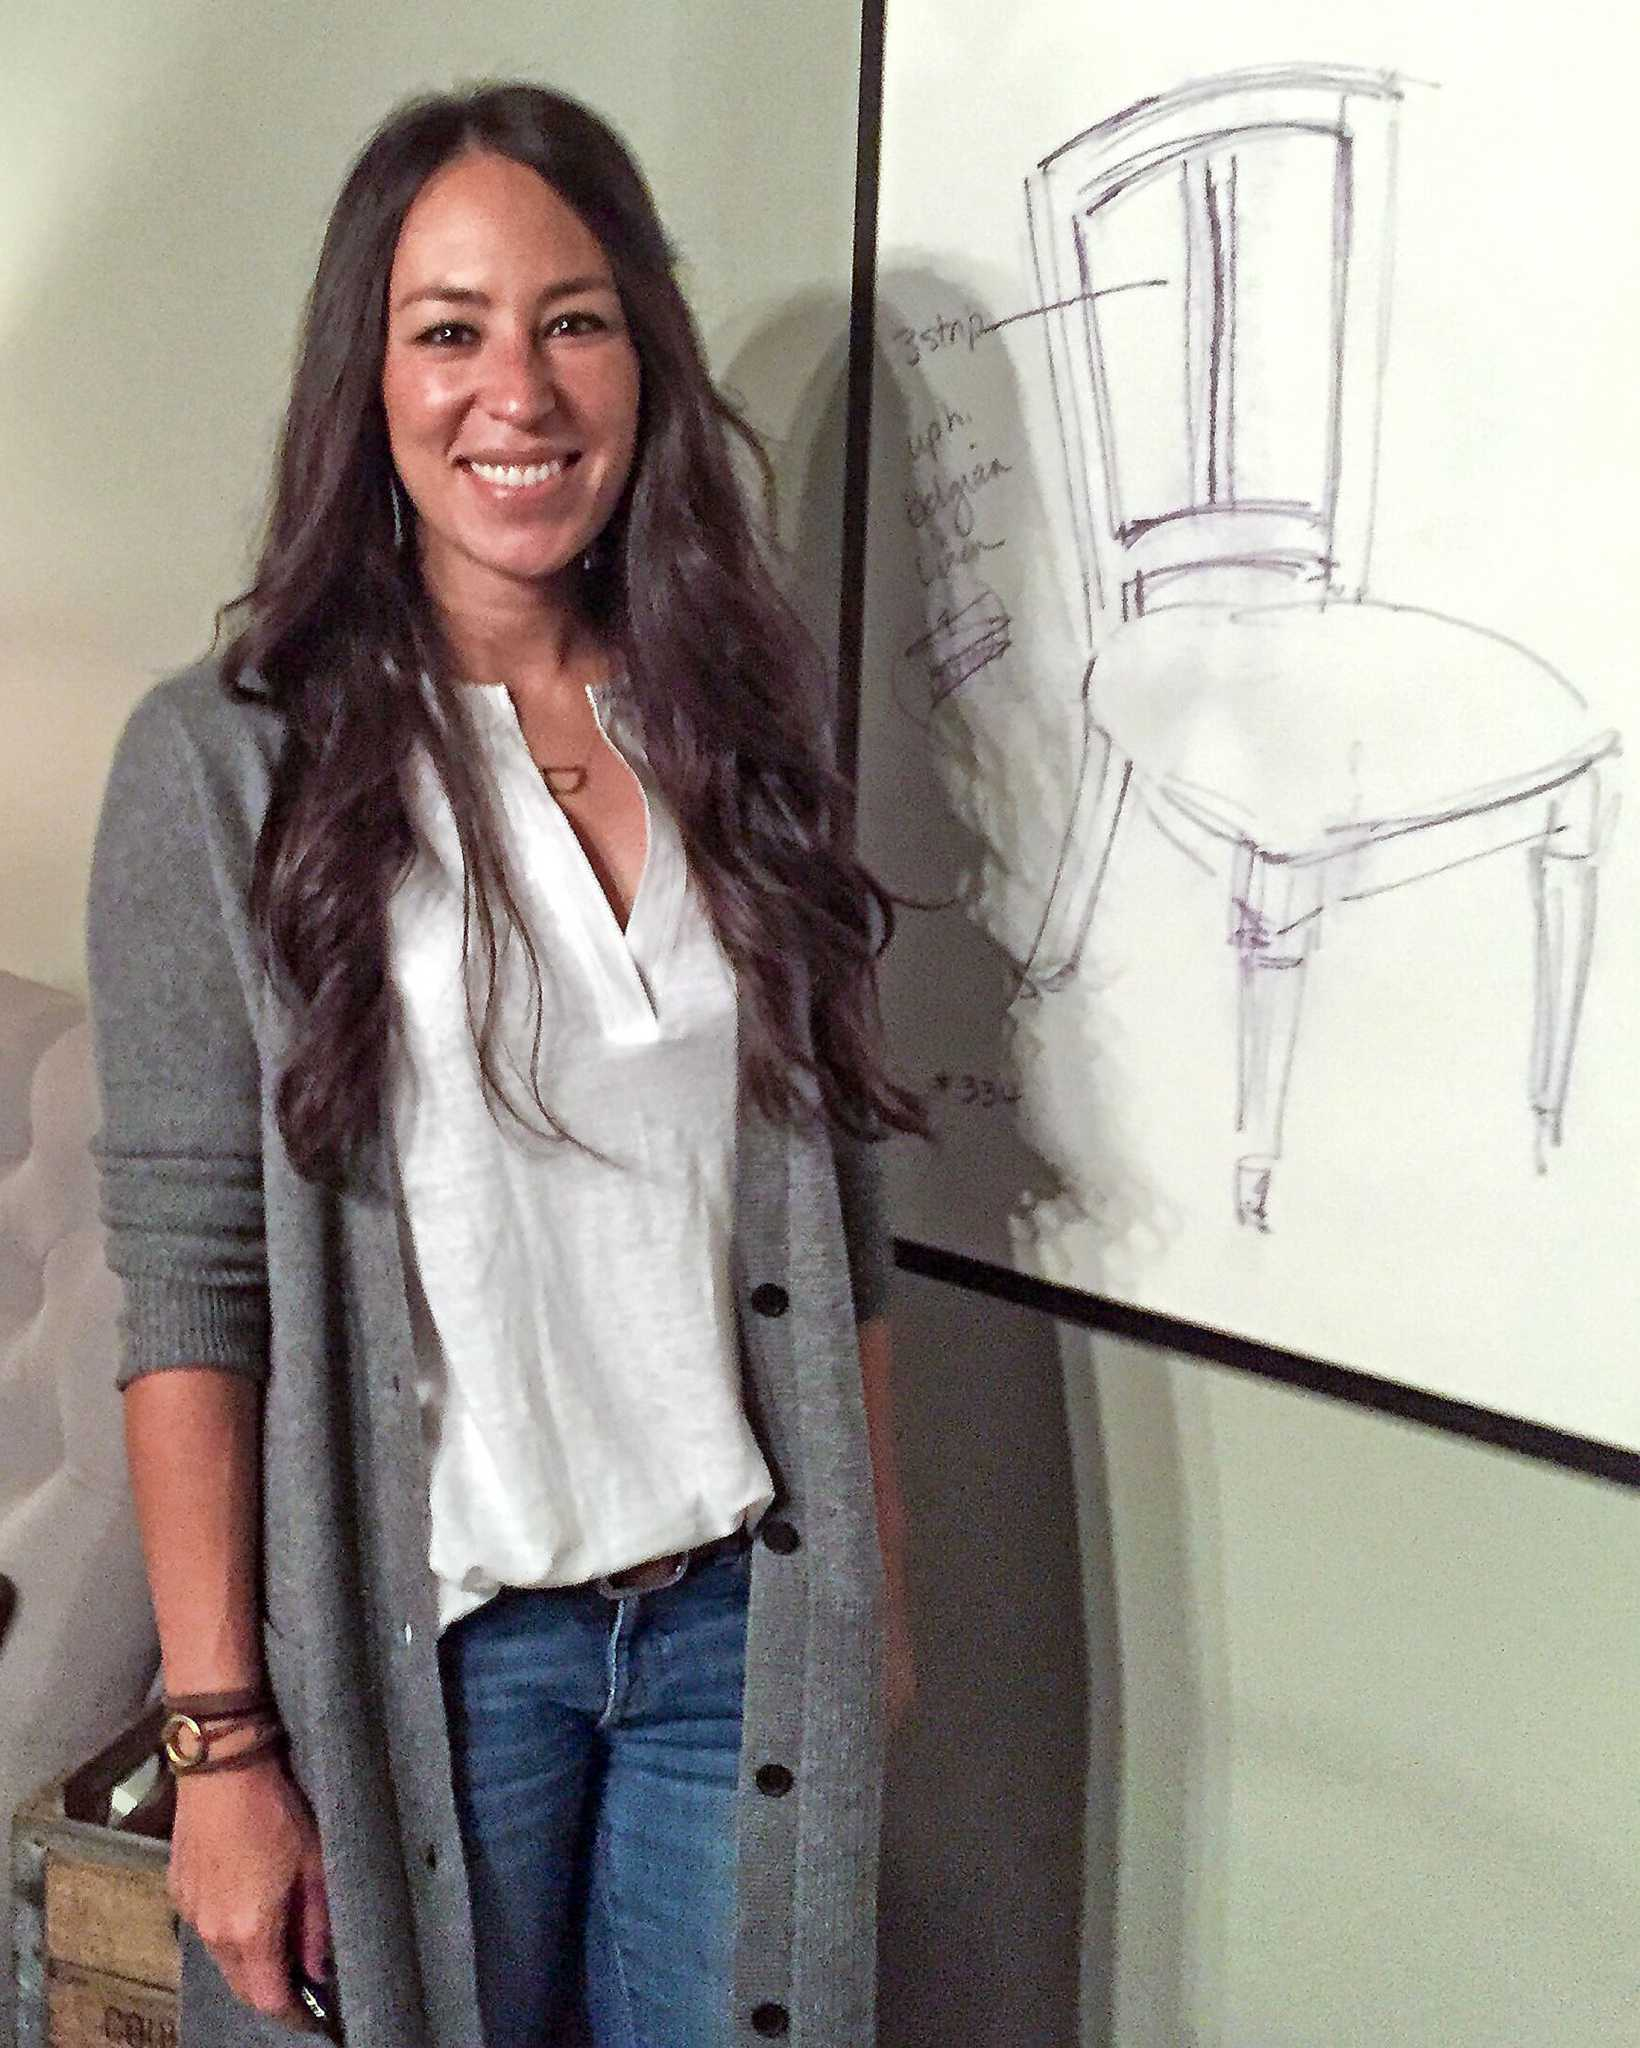 hgtv 39 s 39 fixer upper 39 host introduces furniture line houston chronicle. Black Bedroom Furniture Sets. Home Design Ideas